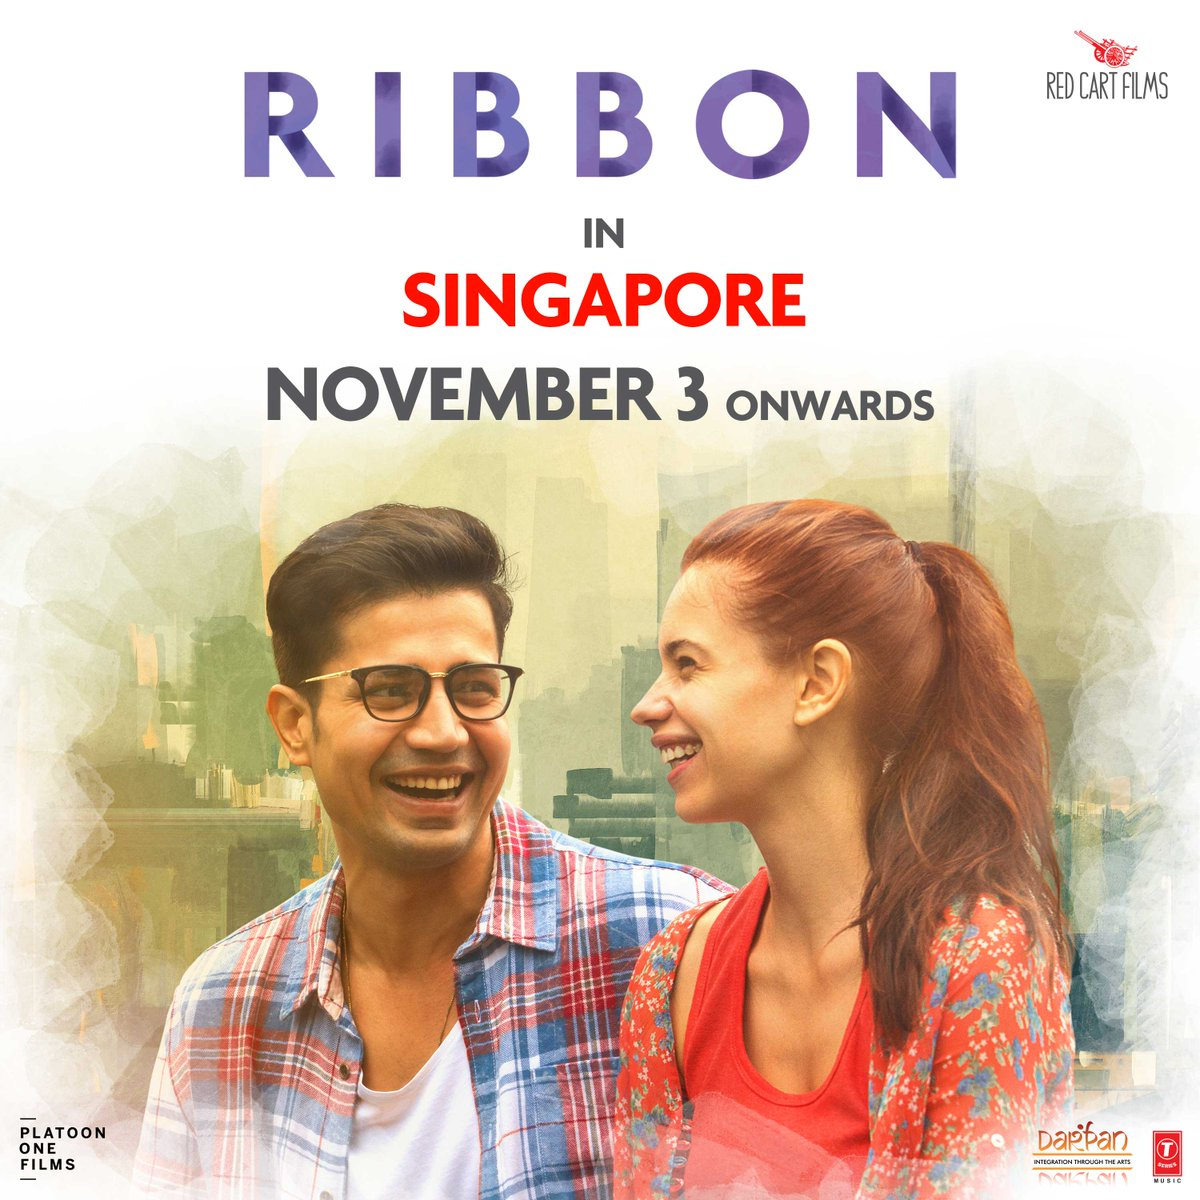 Super happy to announce that #Ribbon will have a simultaneous release in #Singapore on Nov 3 Thanks to @DarpanGlobal &amp; @sreyashisen13<br>http://pic.twitter.com/gjhFnhbQkU